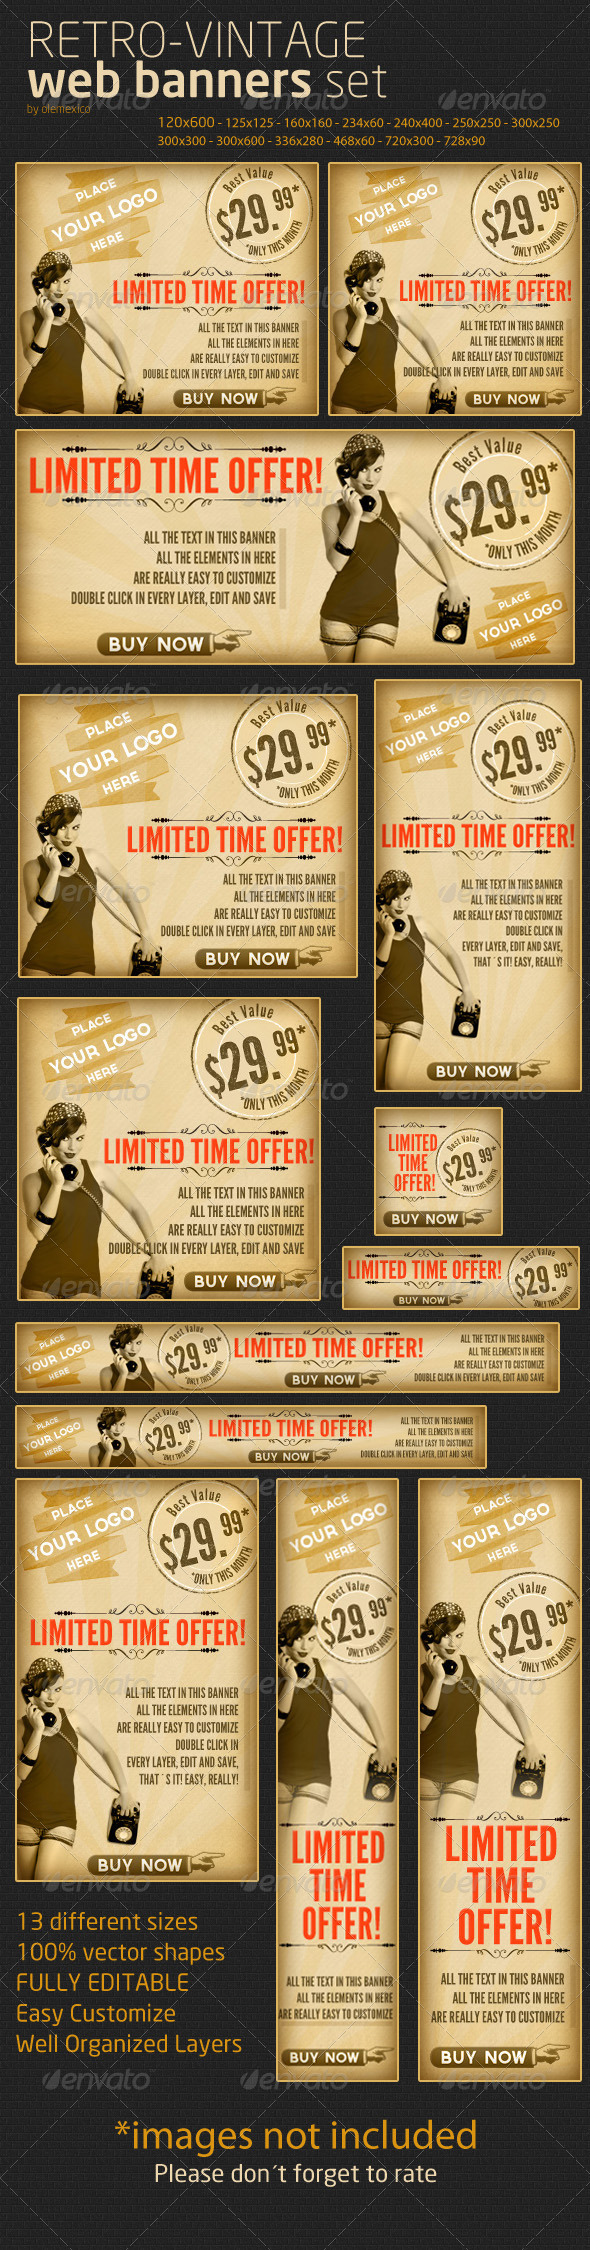 Web Banners - Retro-Vintage Set - Banners & Ads Web Elements